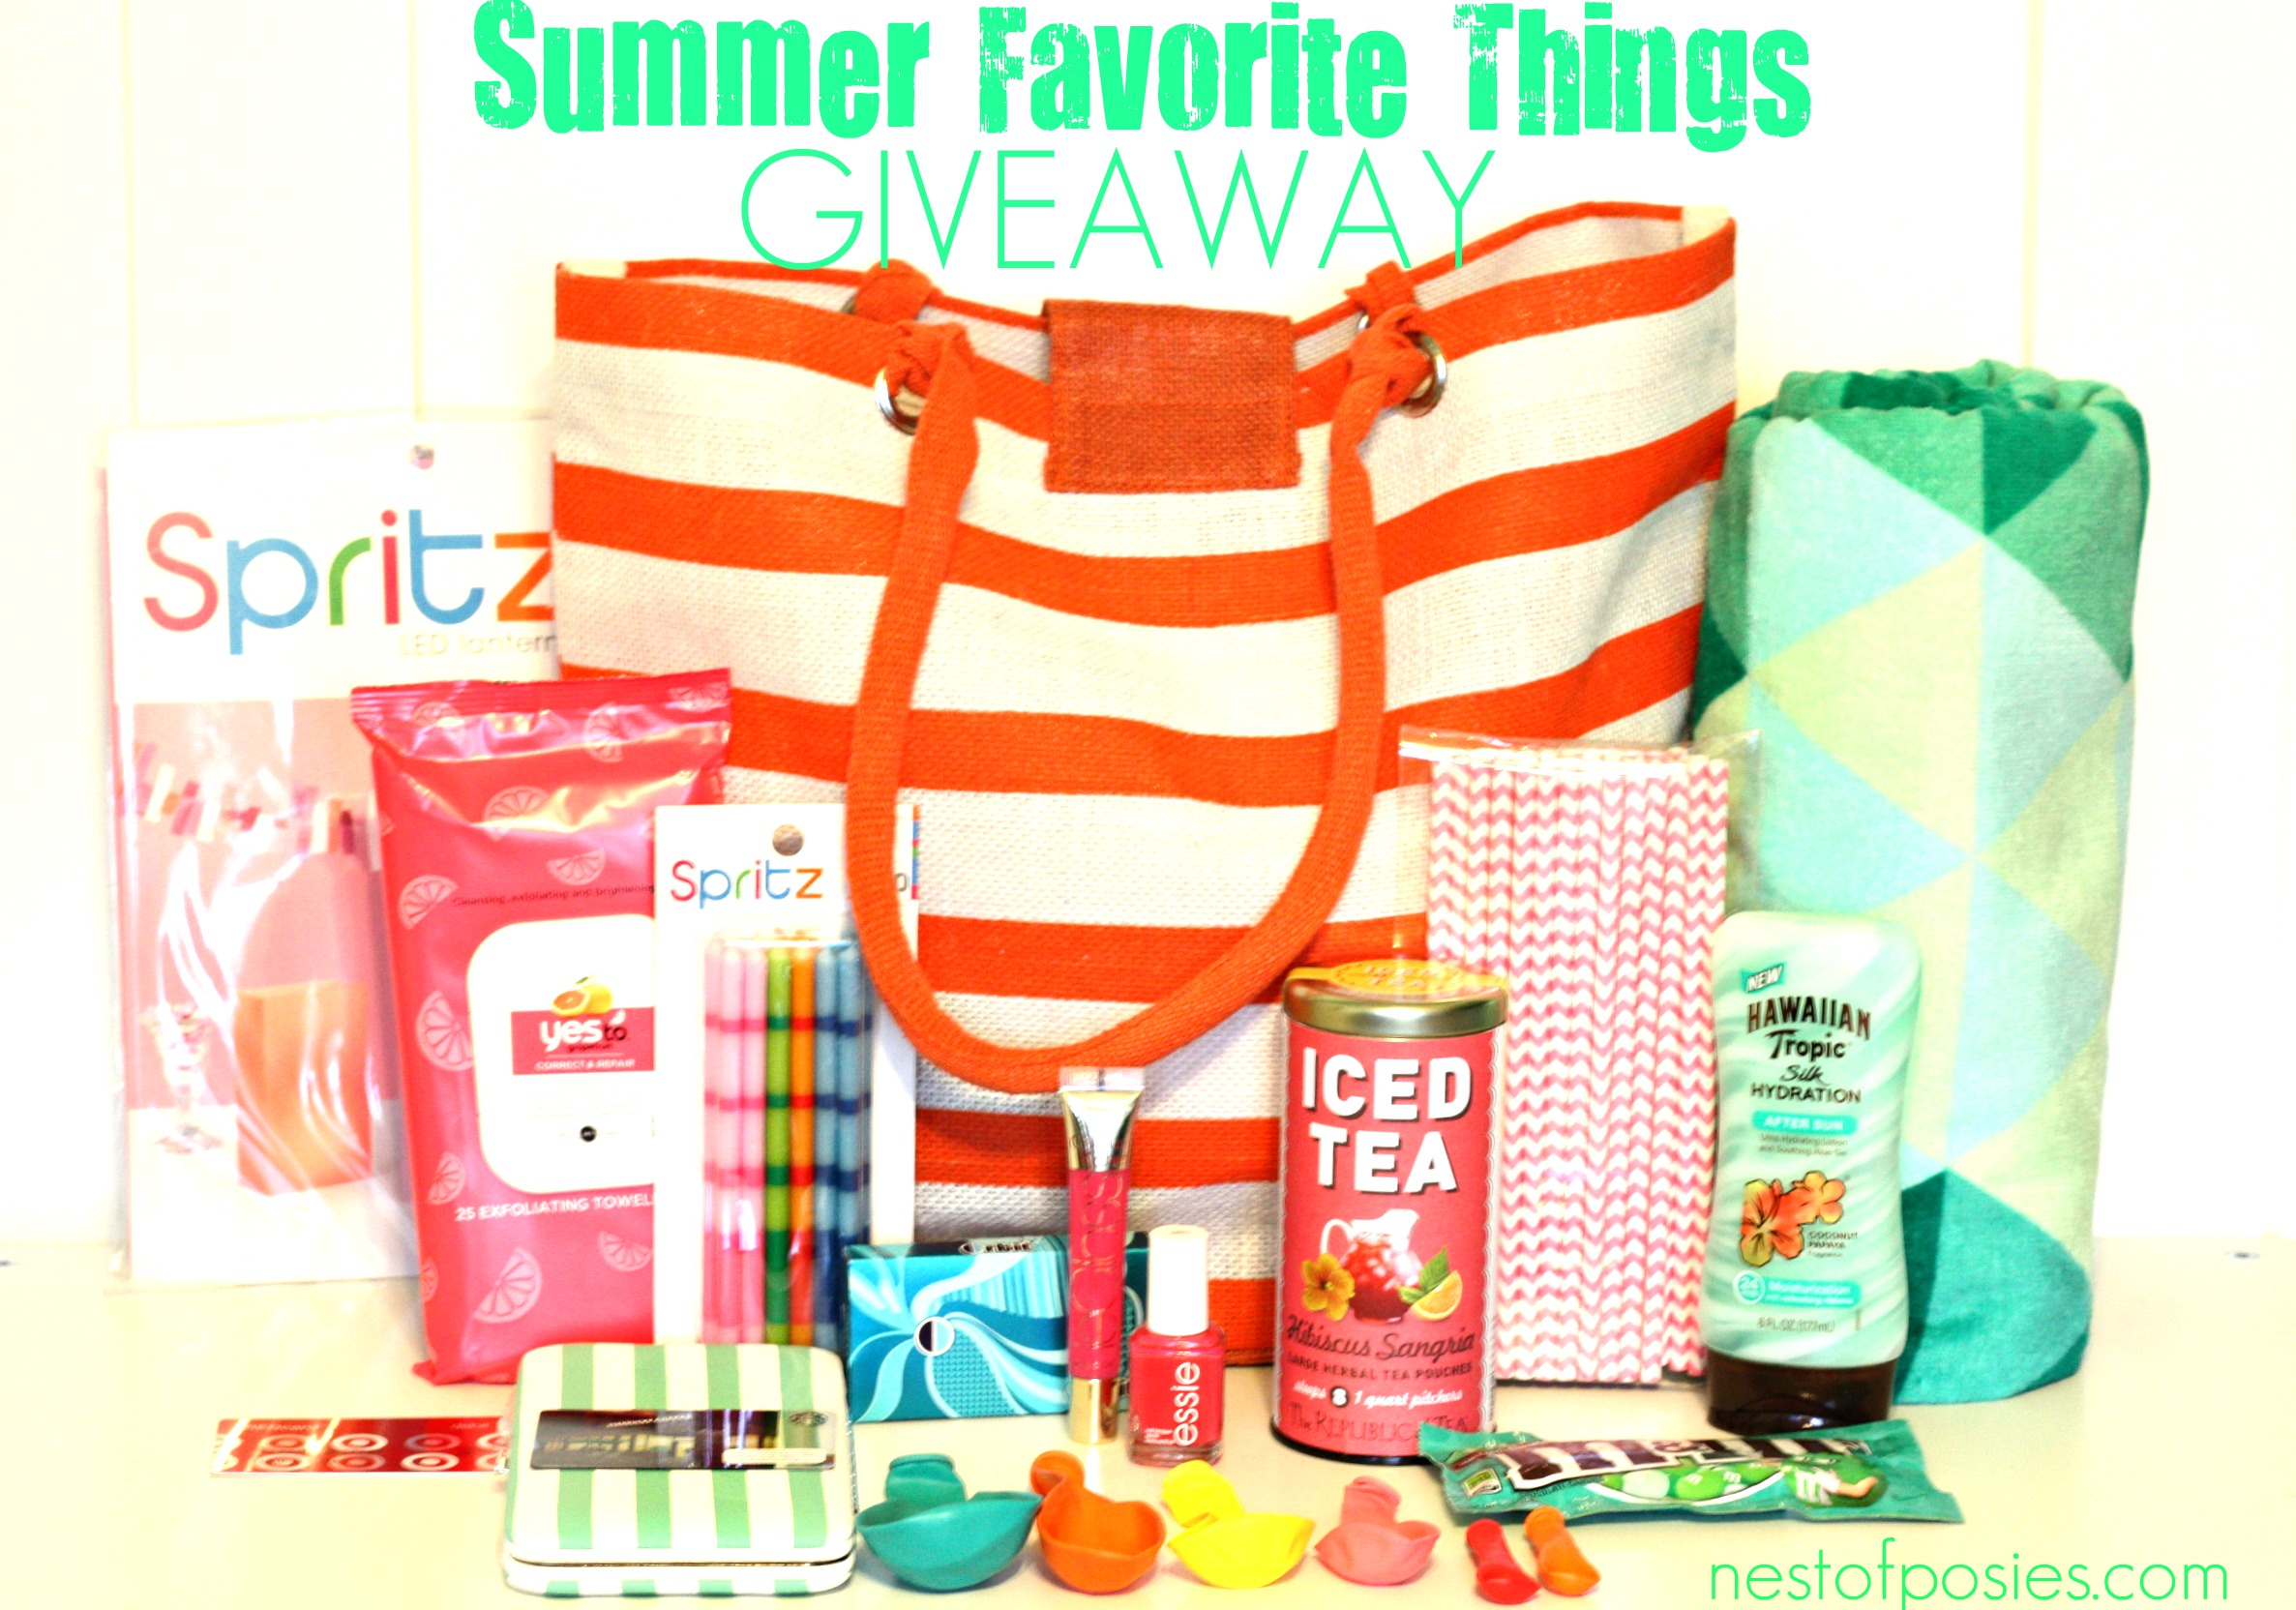 Summer Favorite Things Giveaway via Nest of Posies